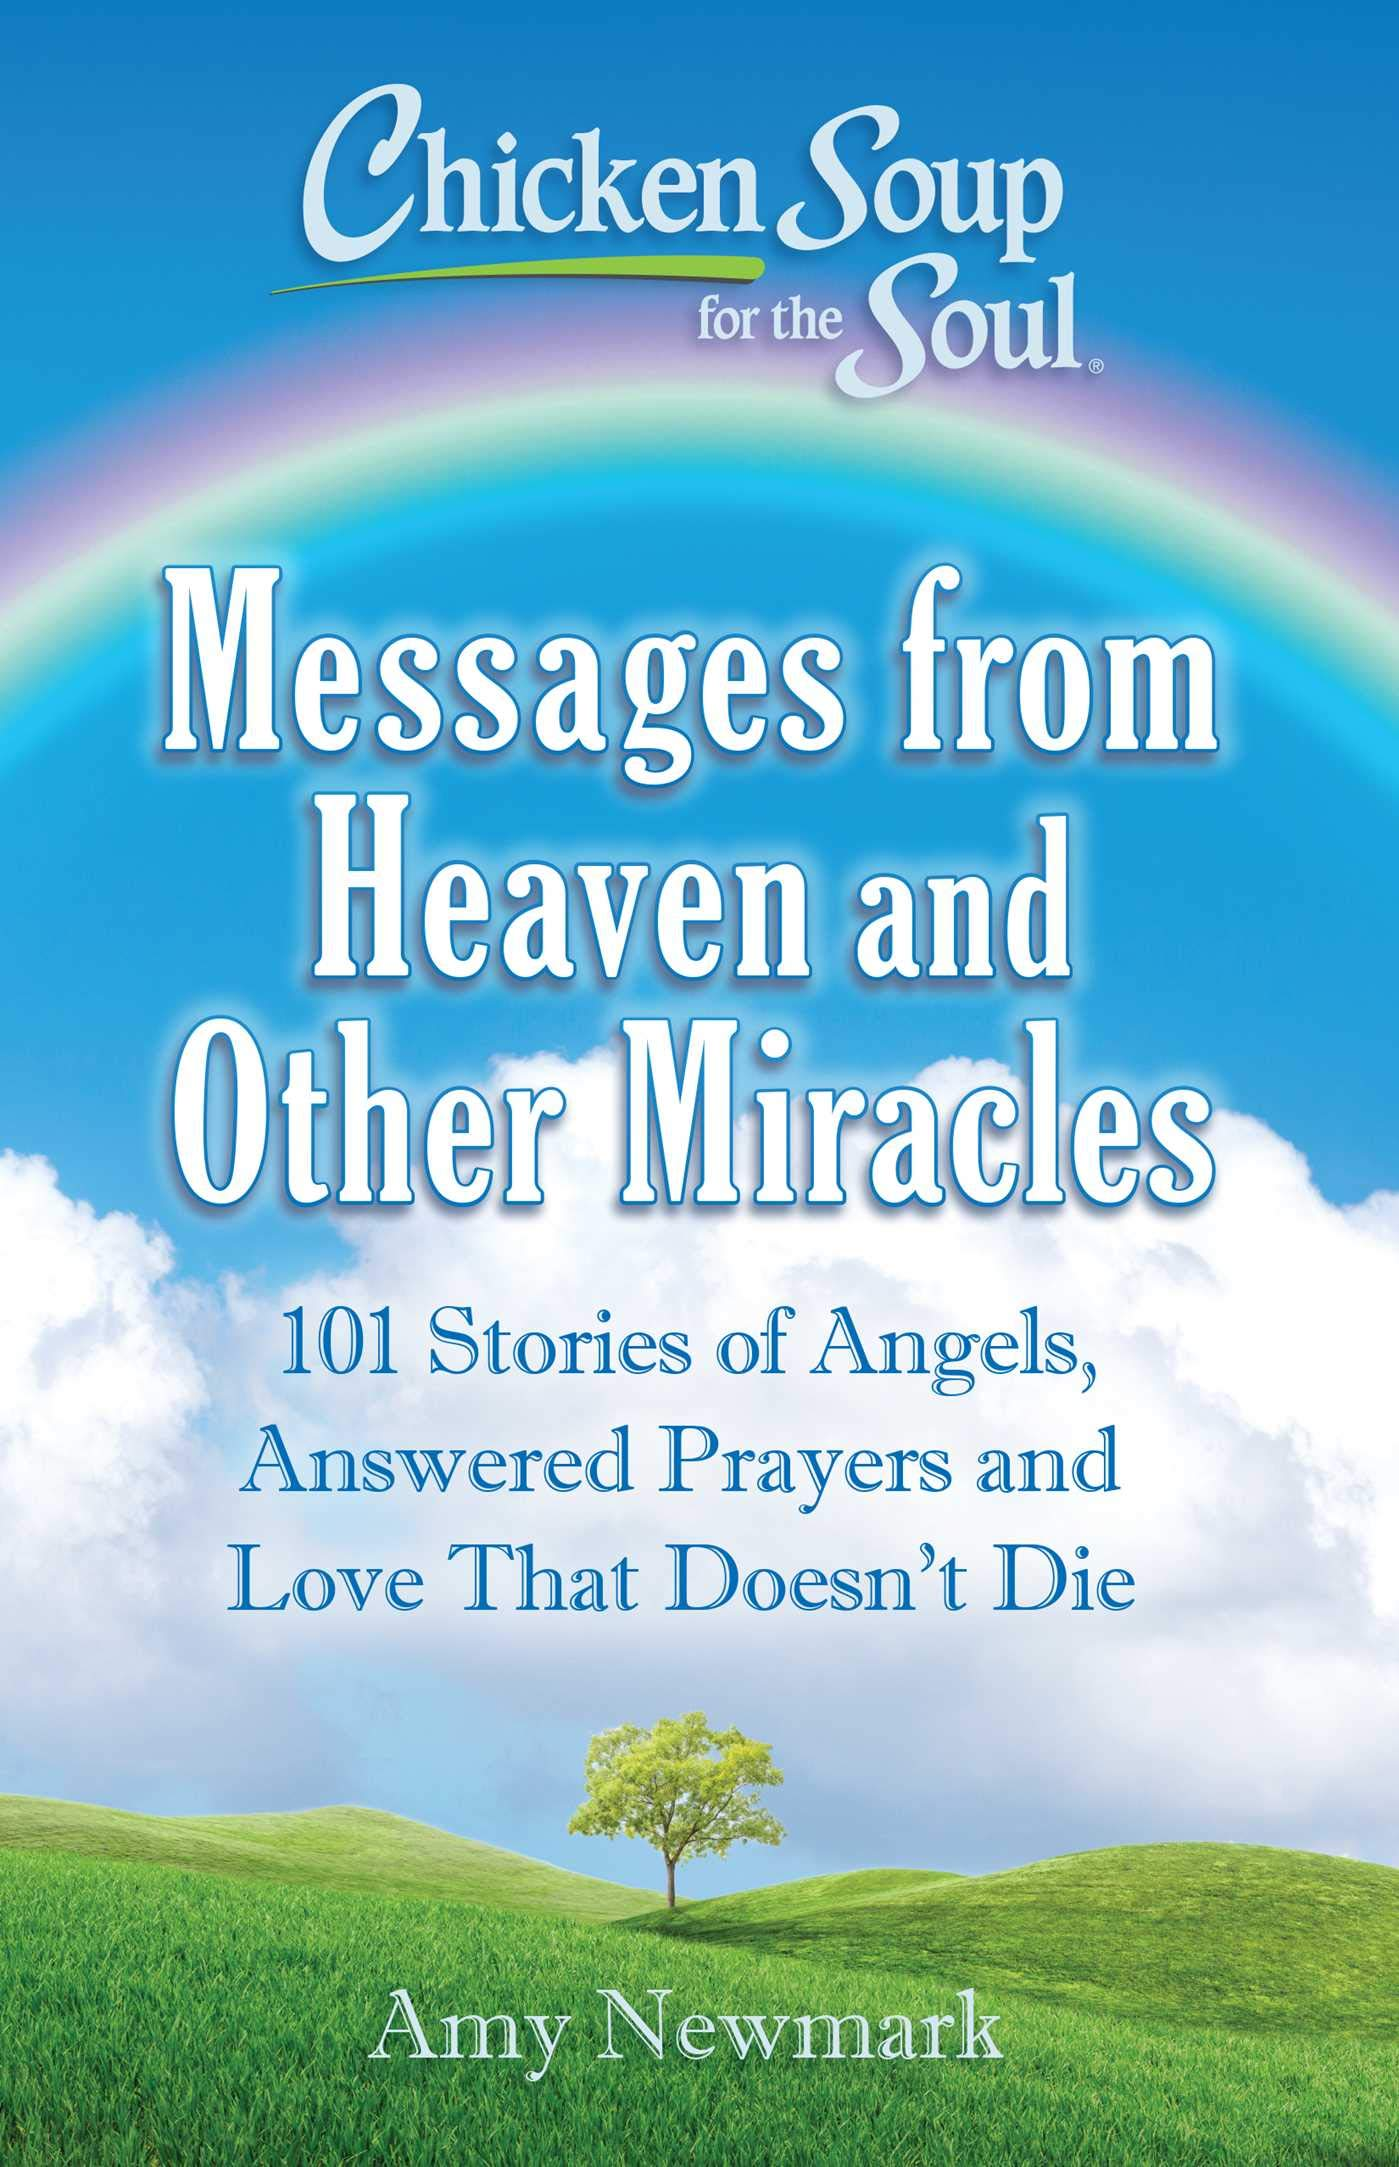 Chicken Soup for the Soul: Messages from Heaven and Other Miracles: 101 Stories of Angels, Answered Prayers, and Love…